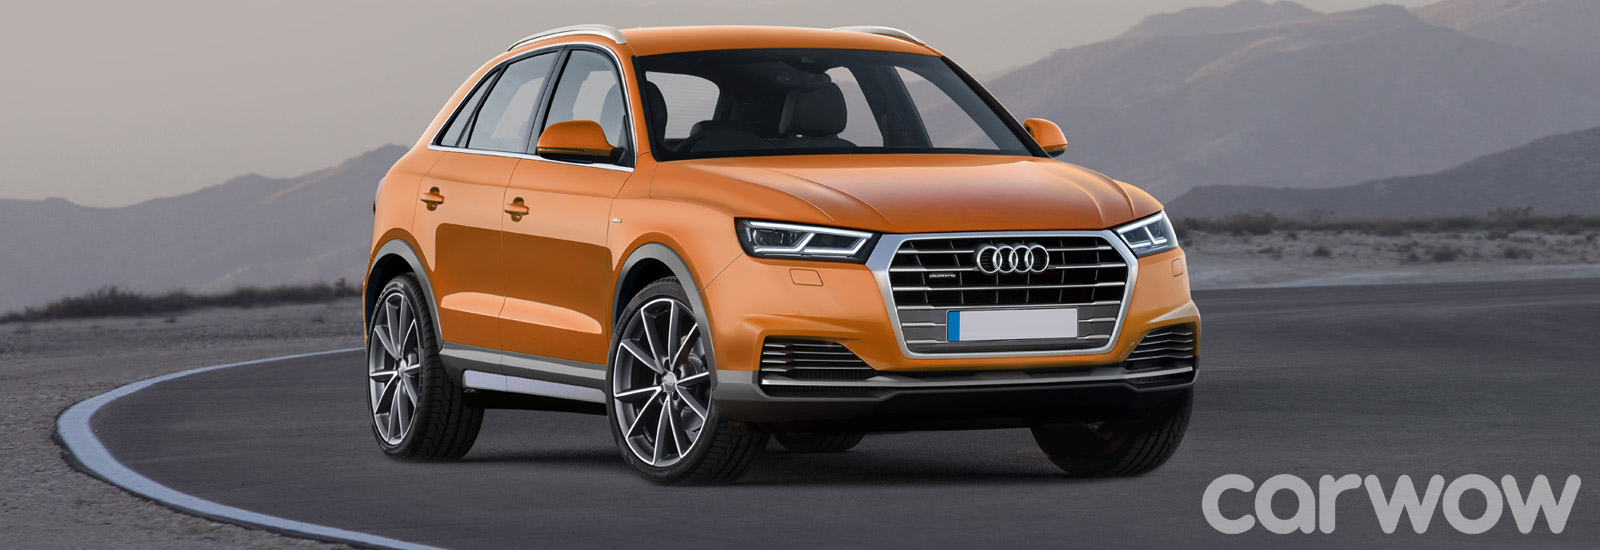 2018 audi q3 interior.  interior our exclusive render shows what the new q3 could look like to 2018 audi q3 interior i